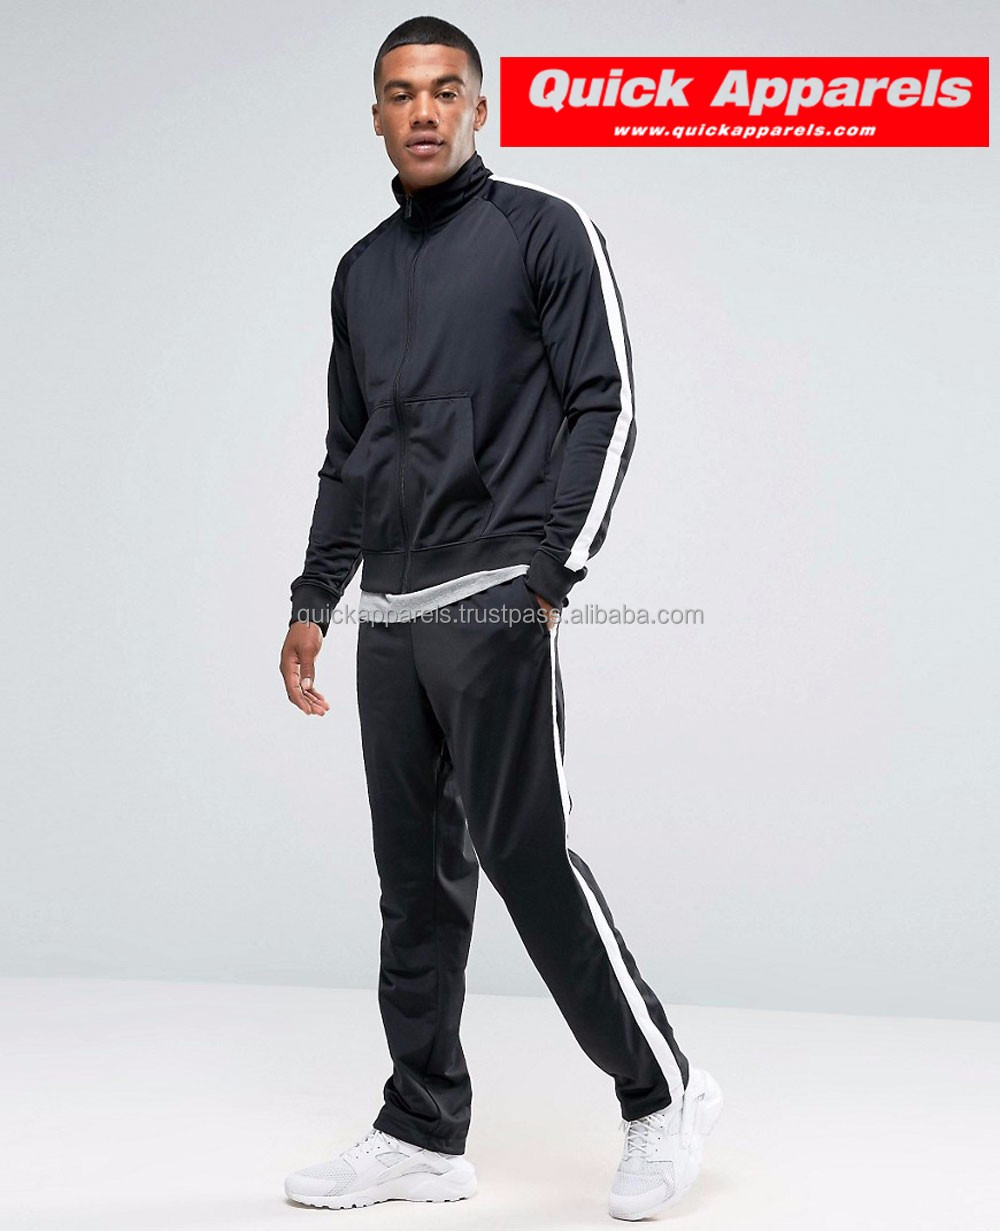 Men And Women Sauna Sweat Suits Supplier From Sialkot-Pakistan quick apparels